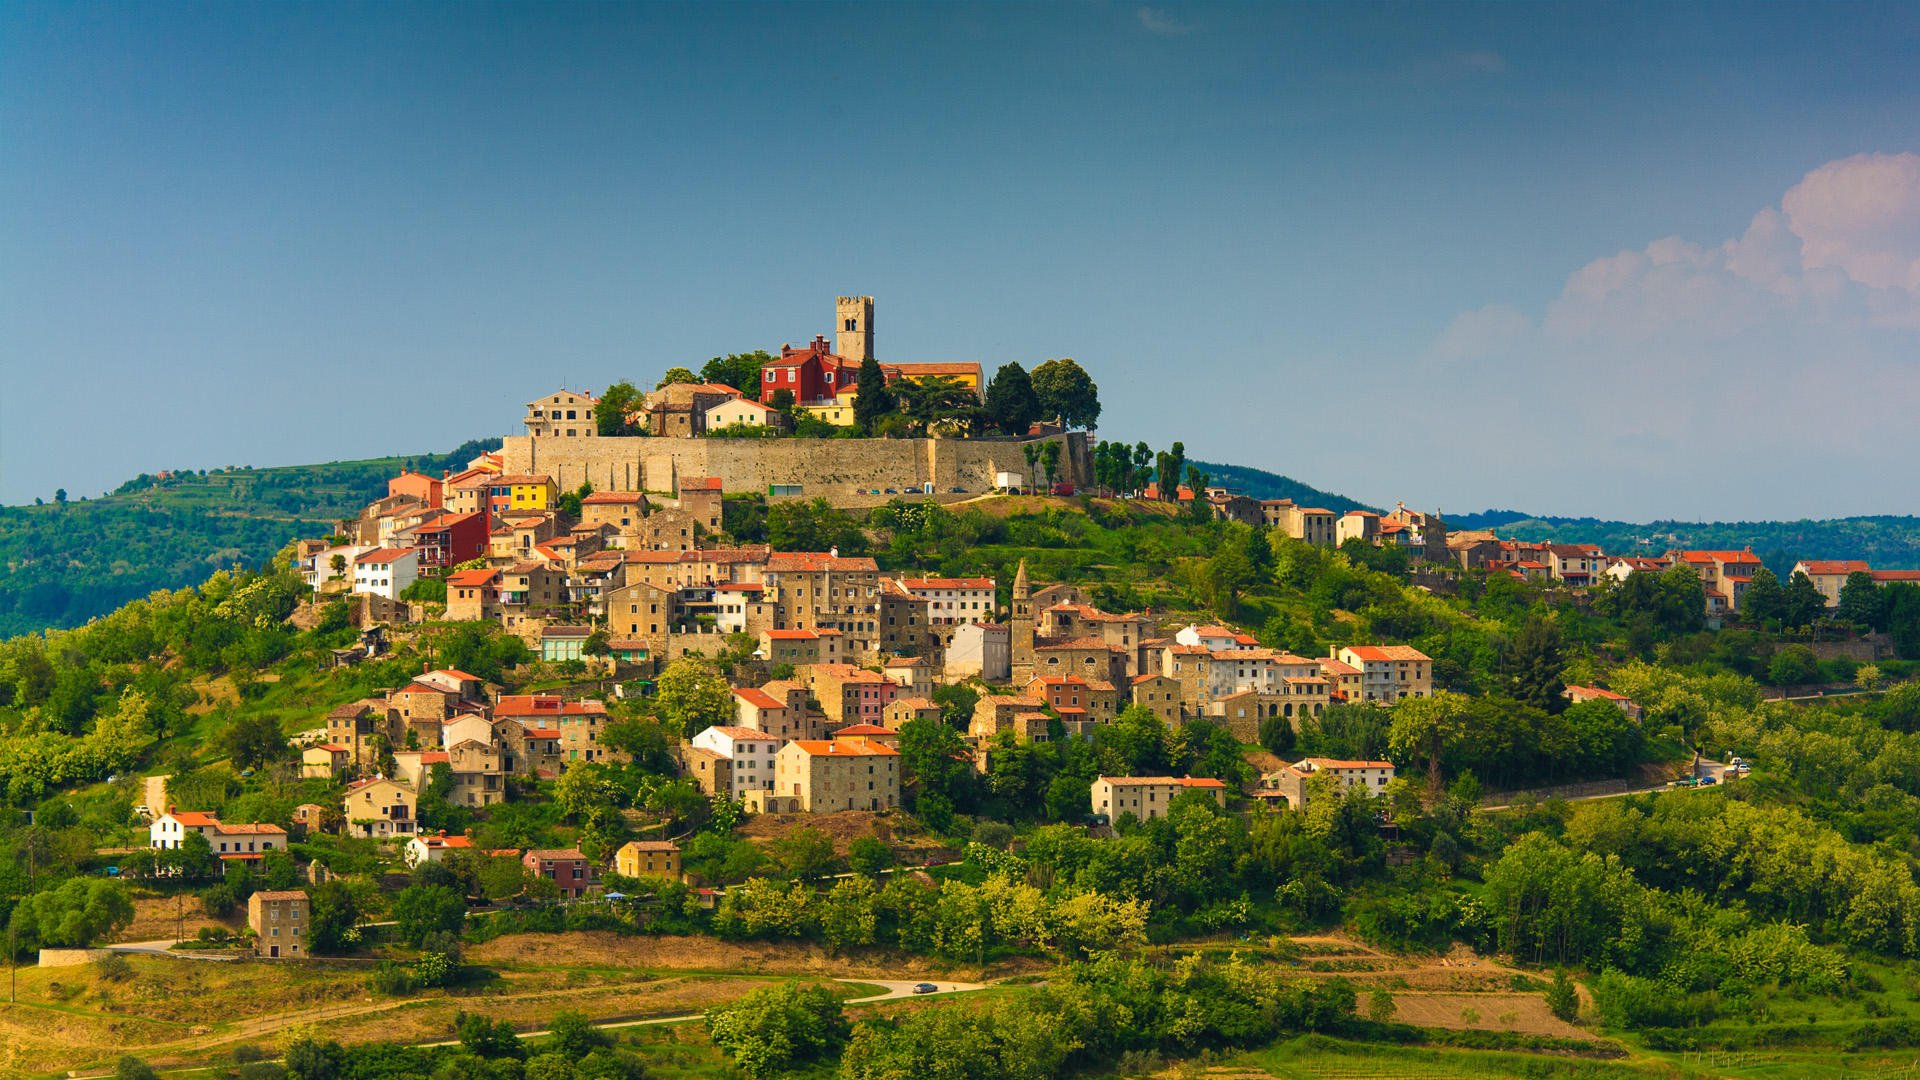 Motovun, Istria, Croatia, photo by Zoran Jelaca